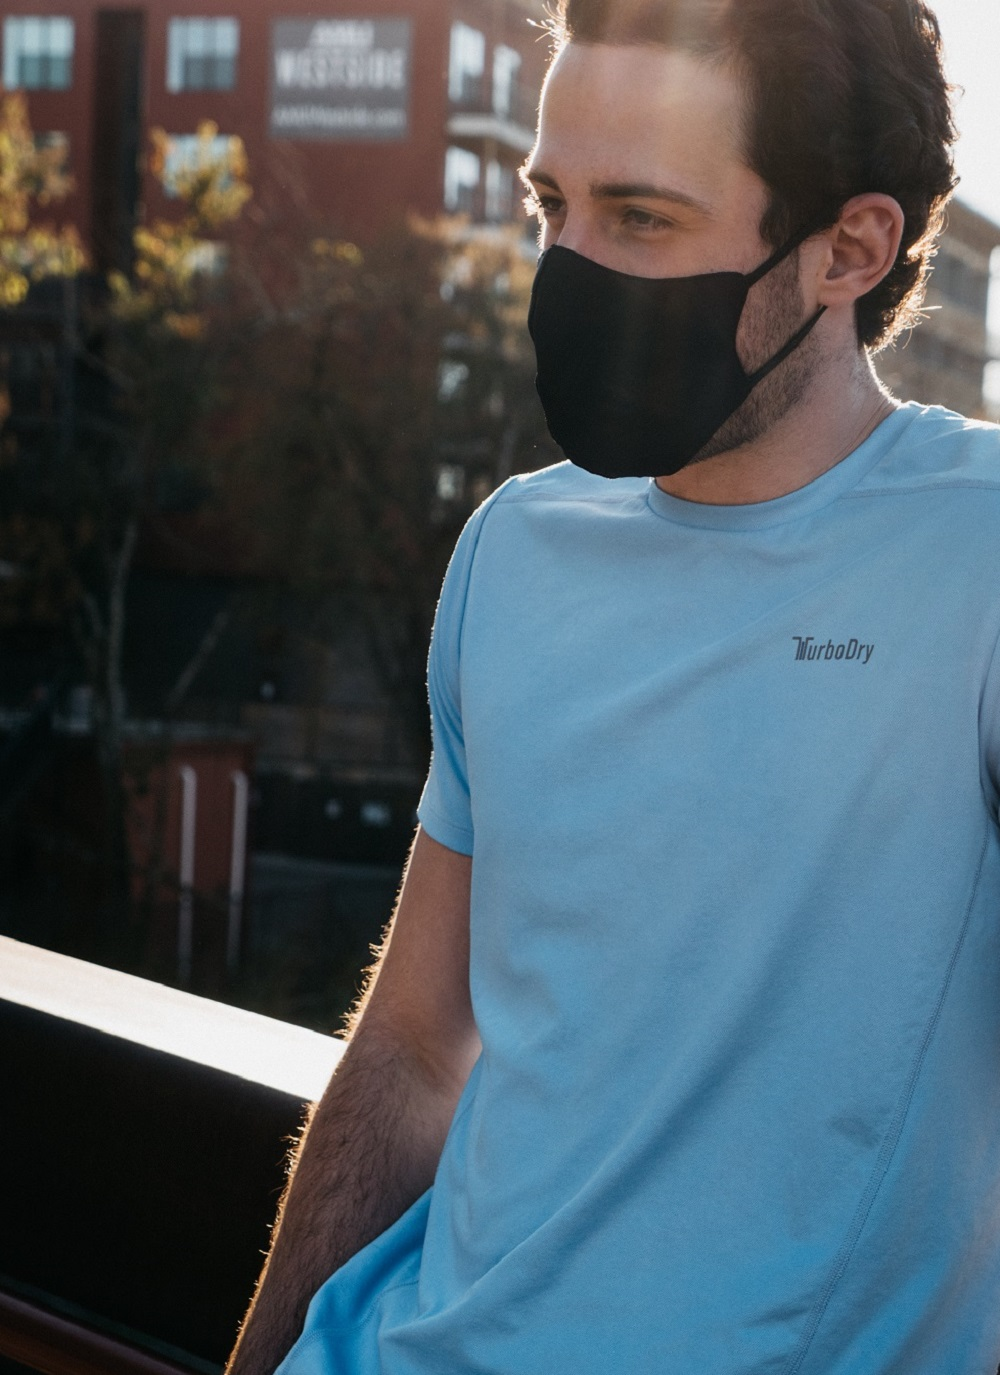 NexTex Innovations launched ParticleScreen fabric technology developed for facial coverings that can be comfortably worn while being active.